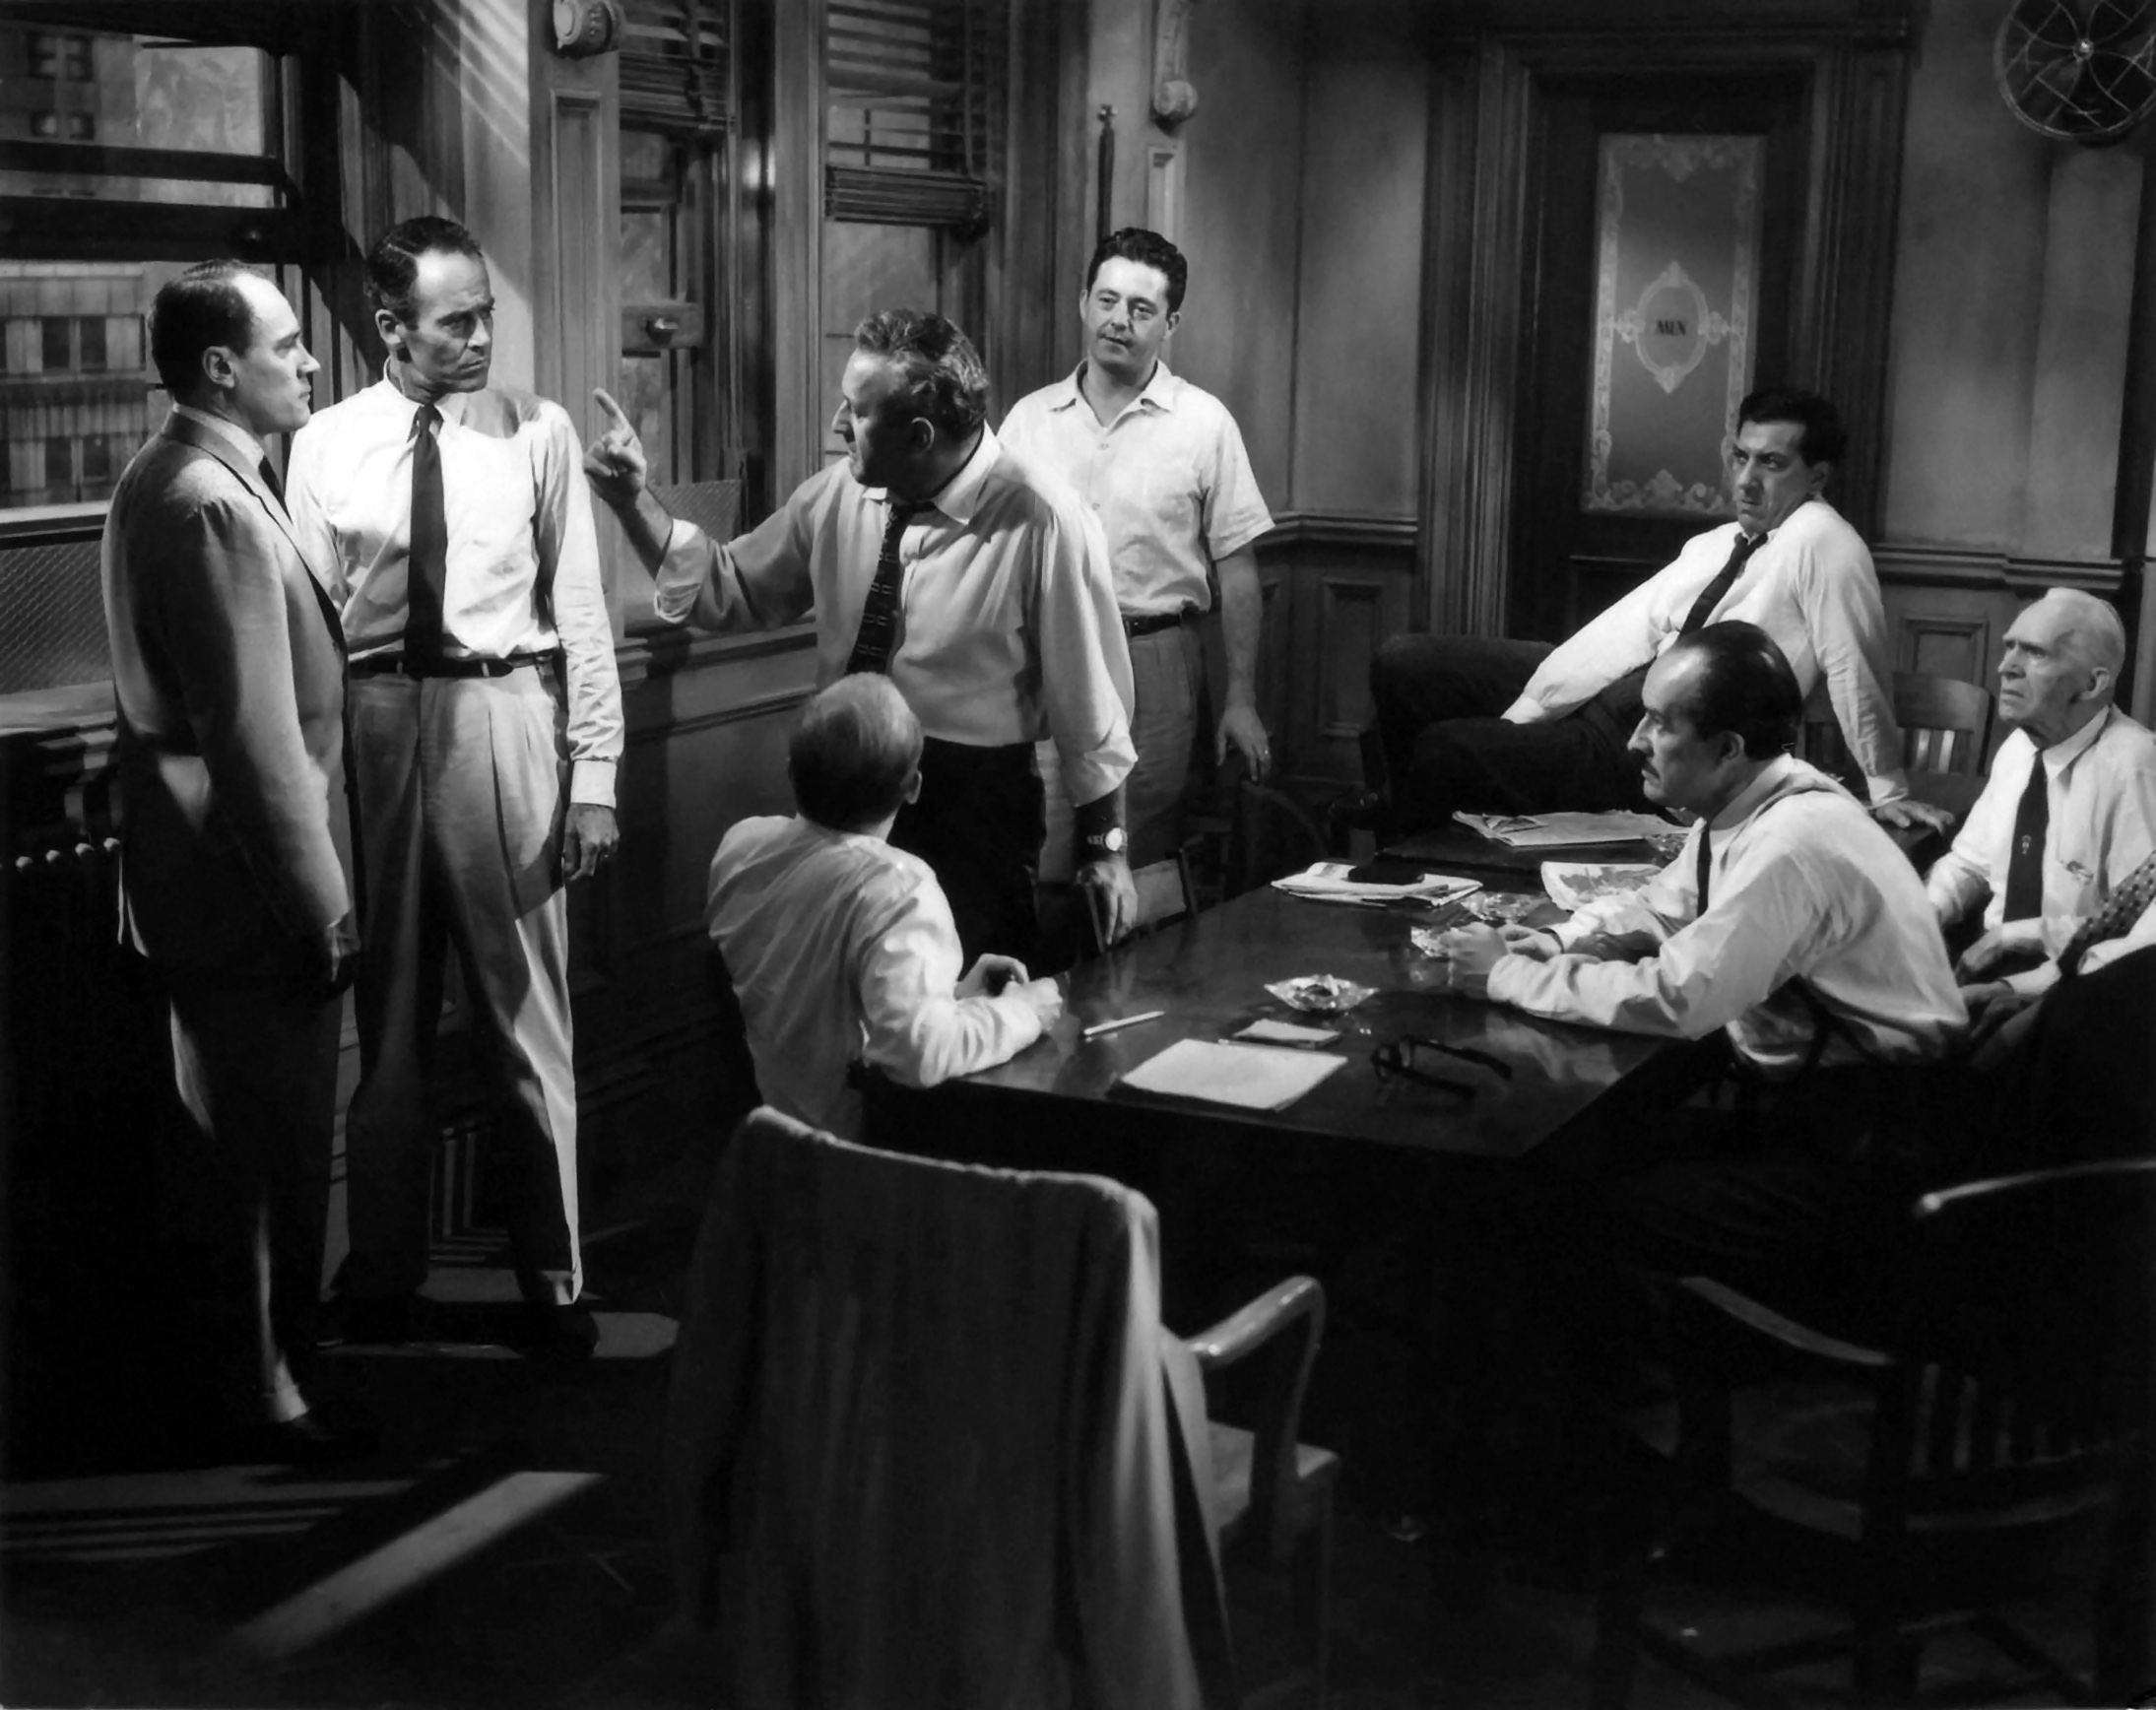 12 Angry Men Backgrounds on Wallpapers Vista